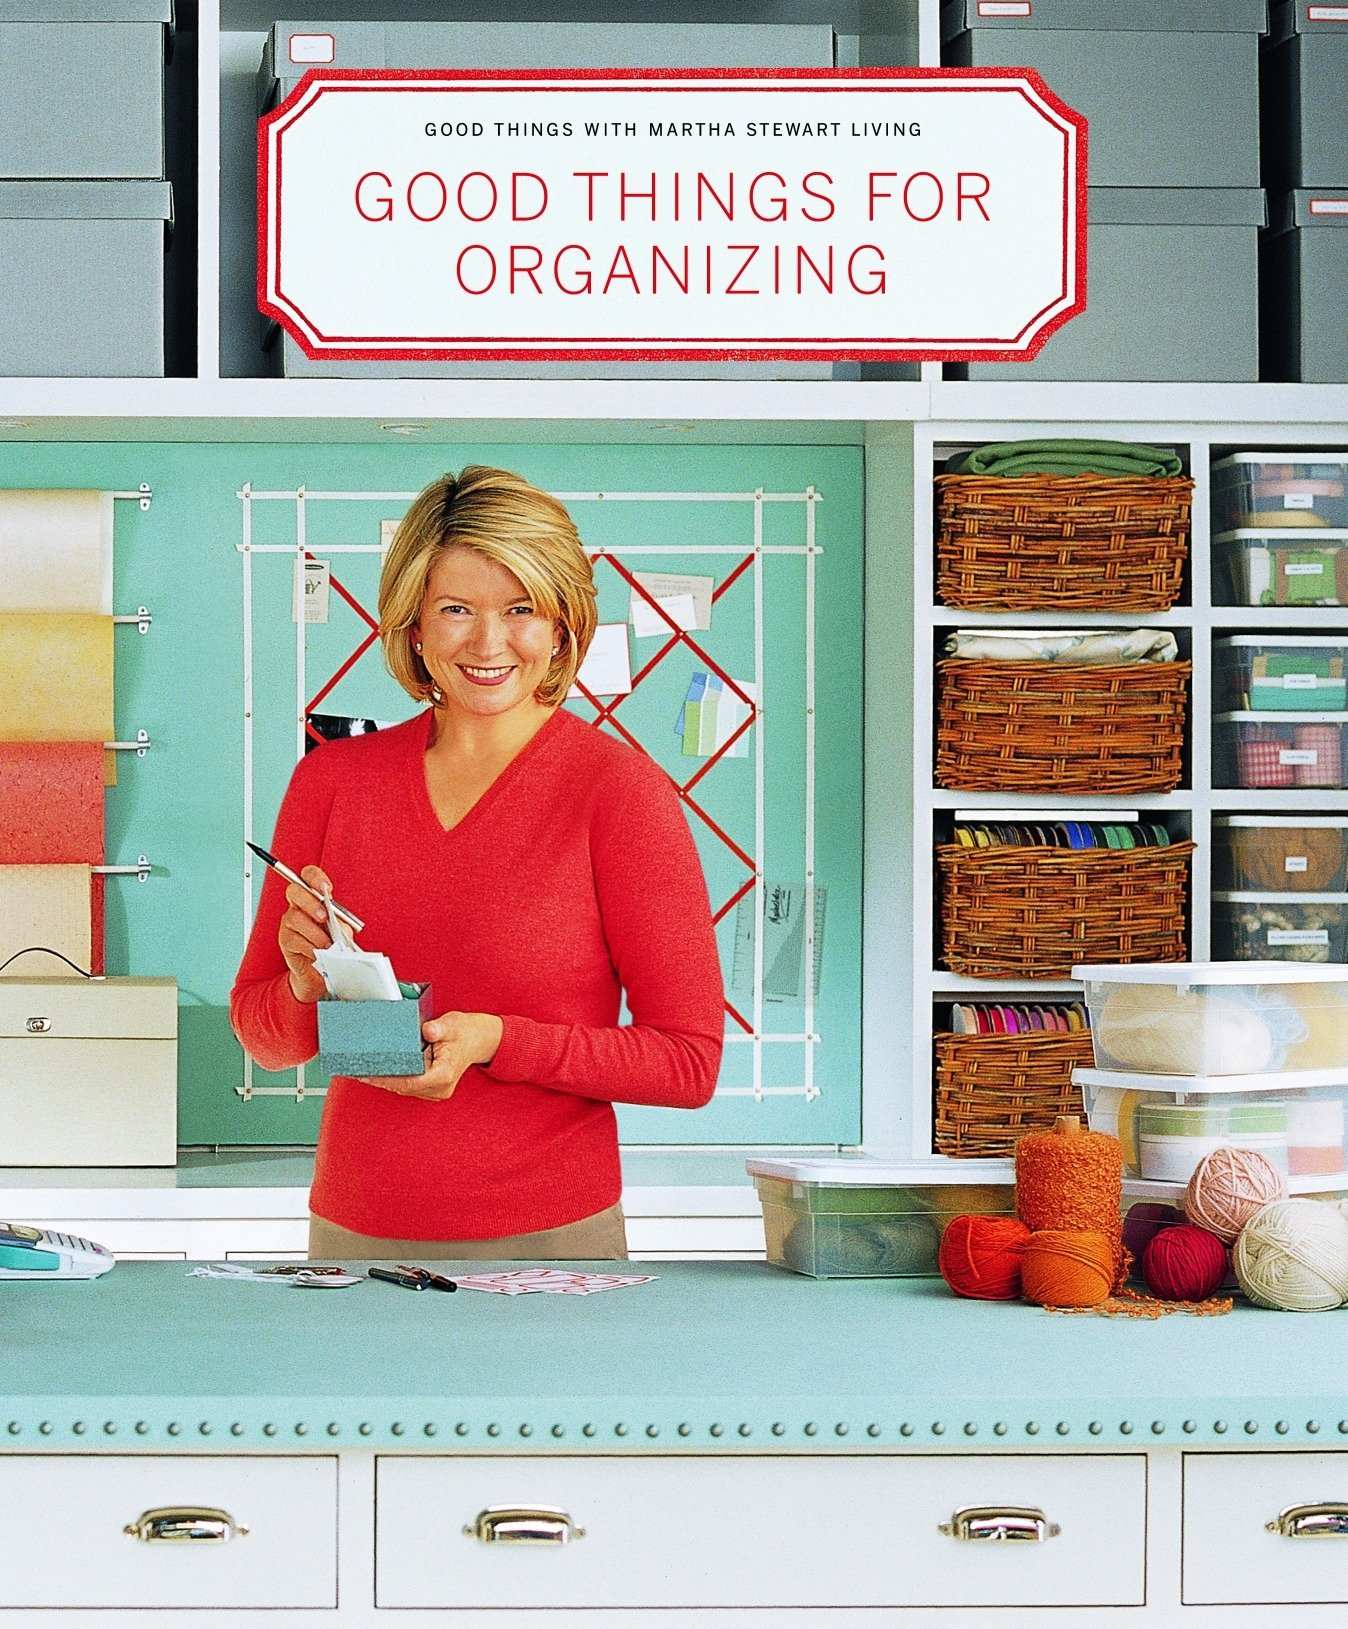 good-things-for-organizing-good-things-with-martha-stewart-living